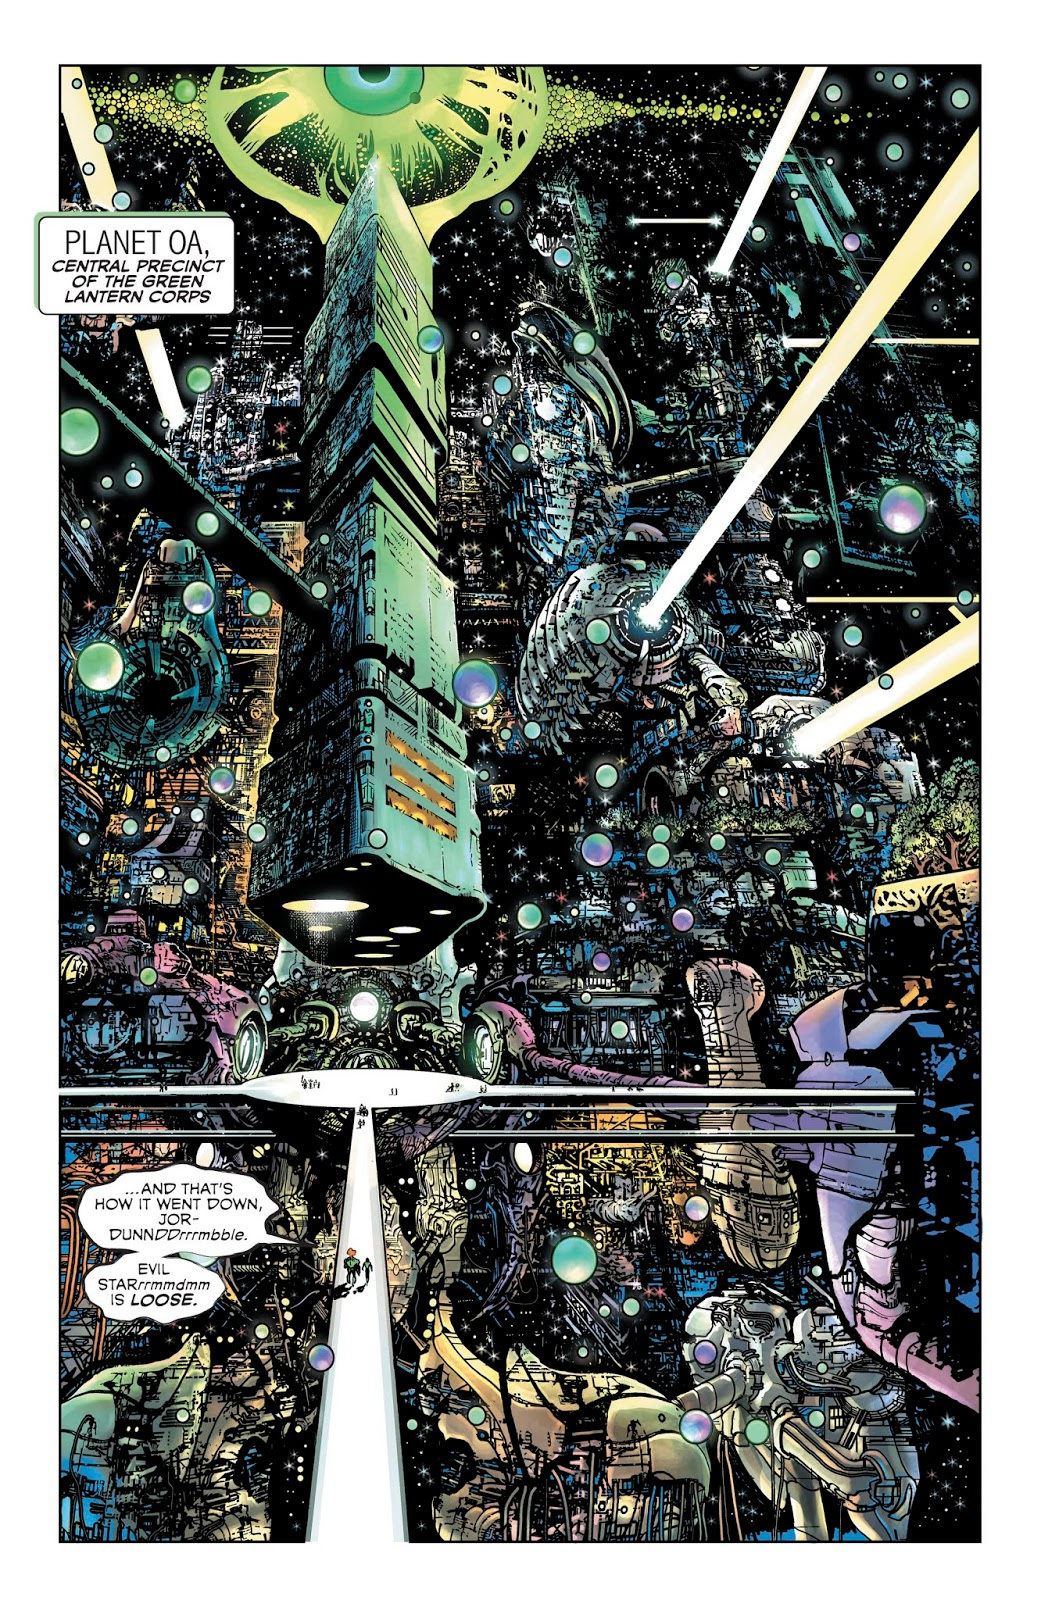 The Green Lantern #2 - OA Splash page. Art by Liam Sharp